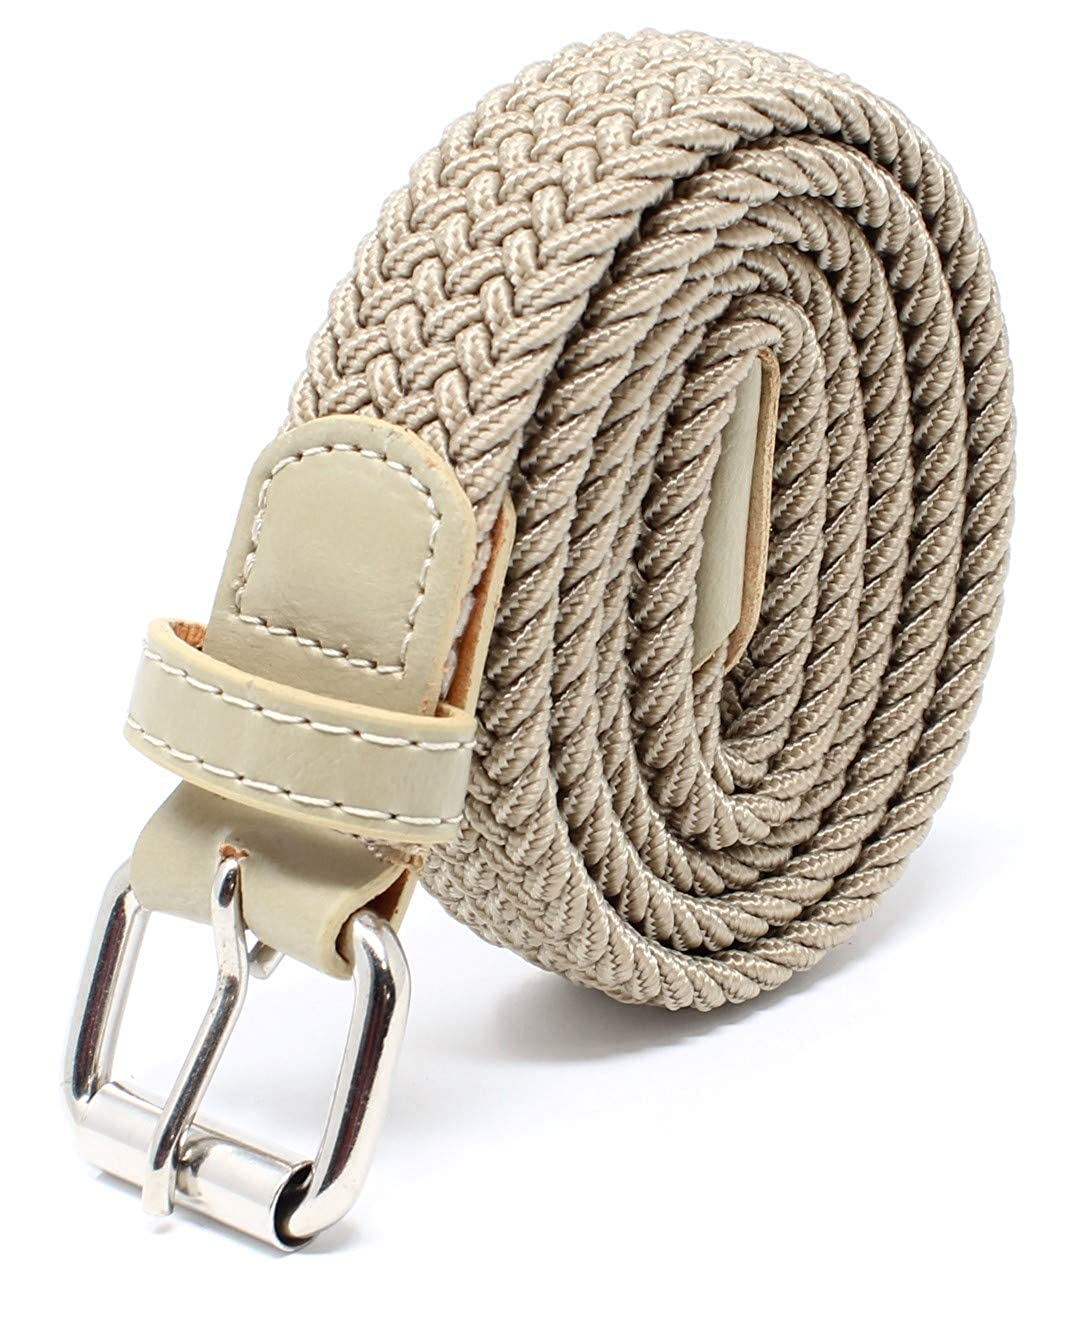 Kids Braided Elastic Woven Stretch Belt Chrome Buckle and Leather Tip Perfect for Children School Uniform